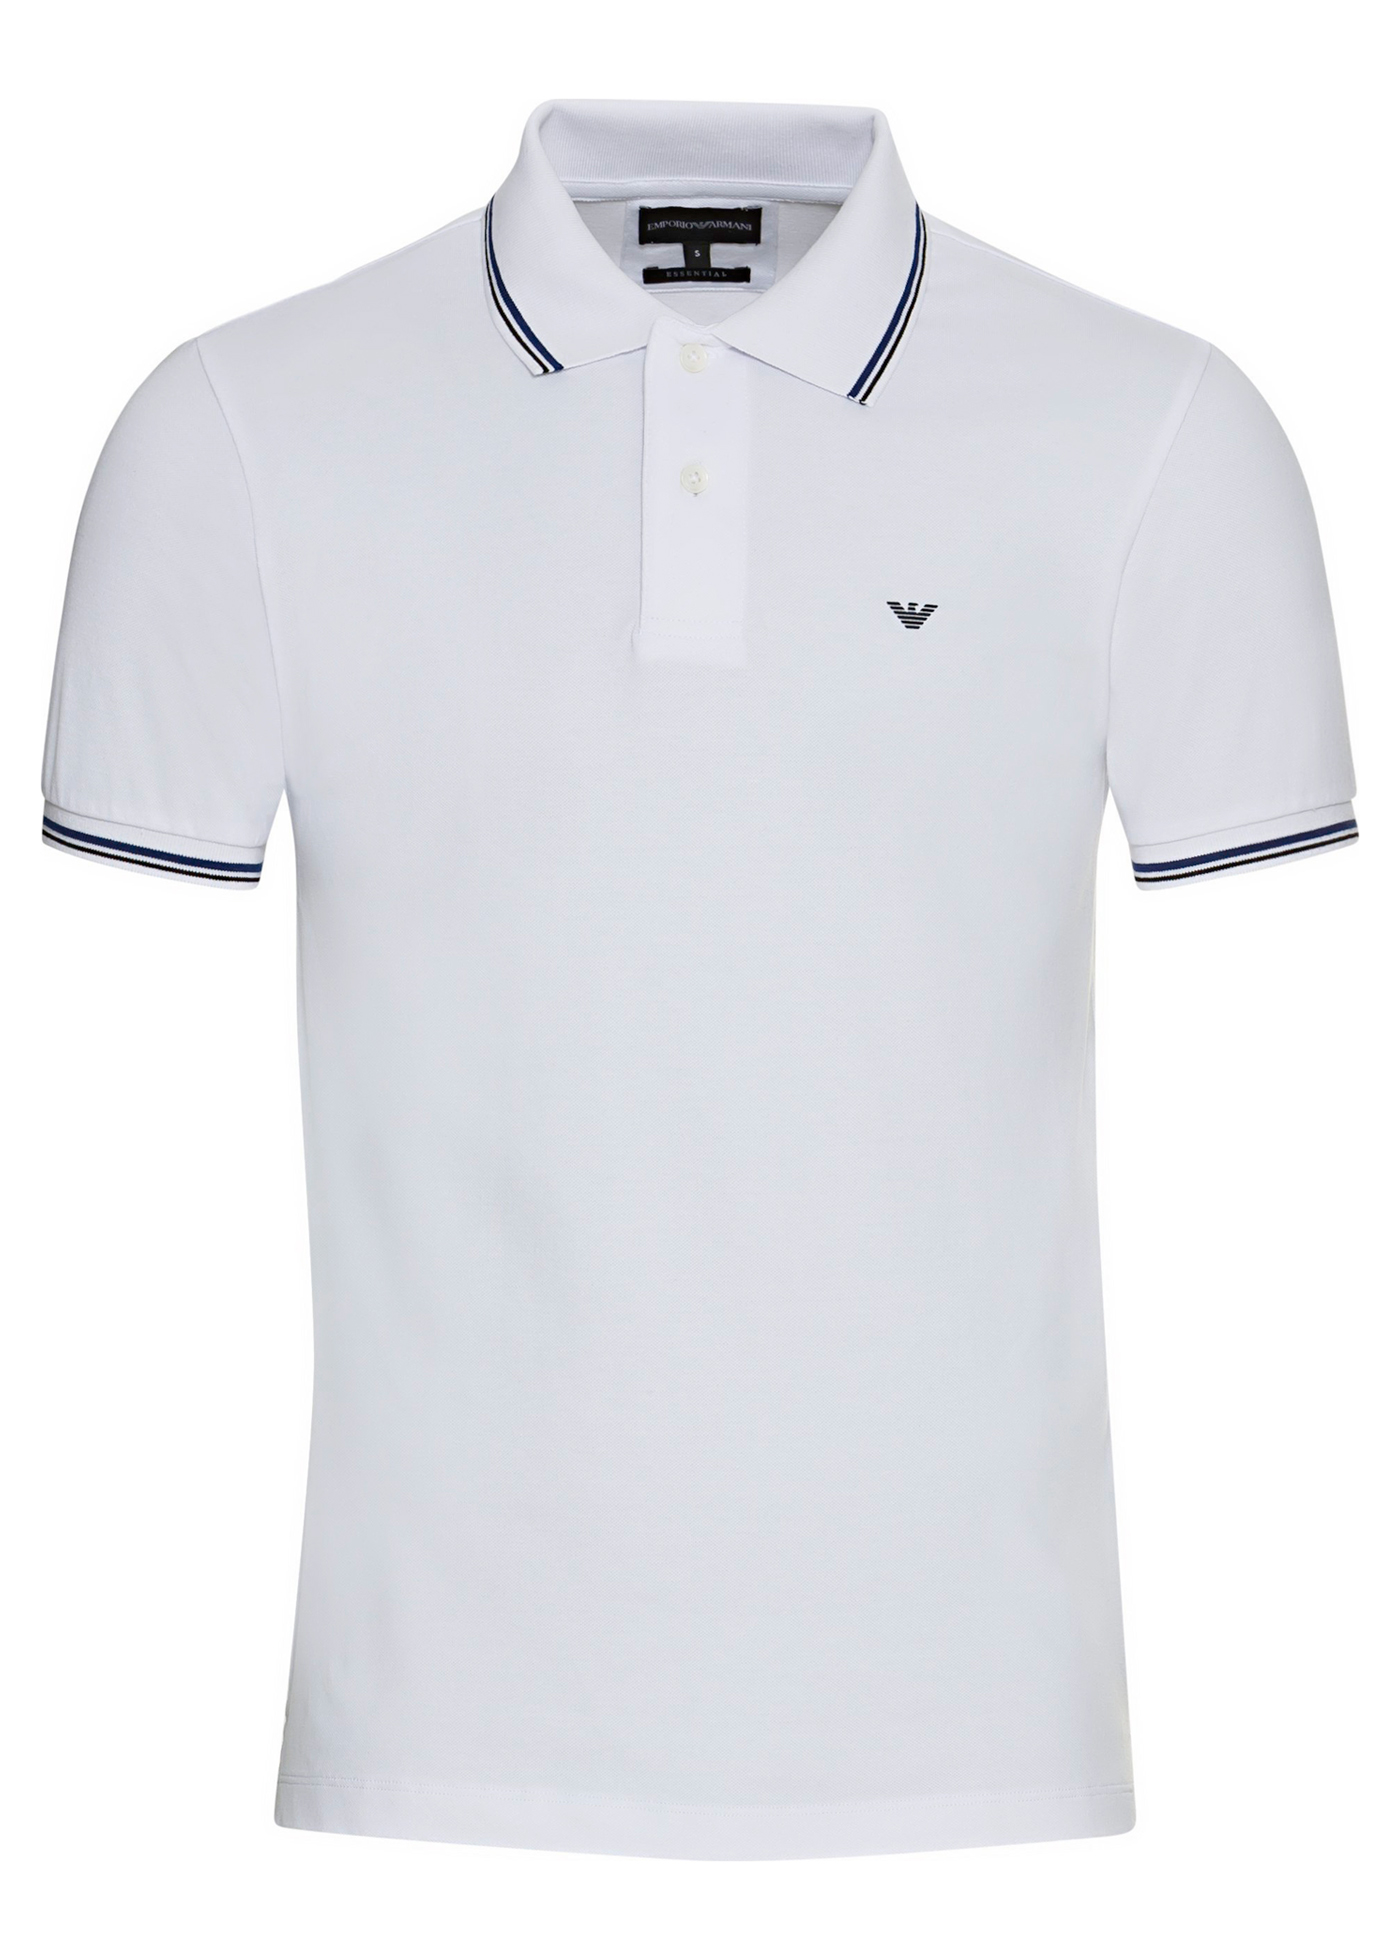 POLO image number 0